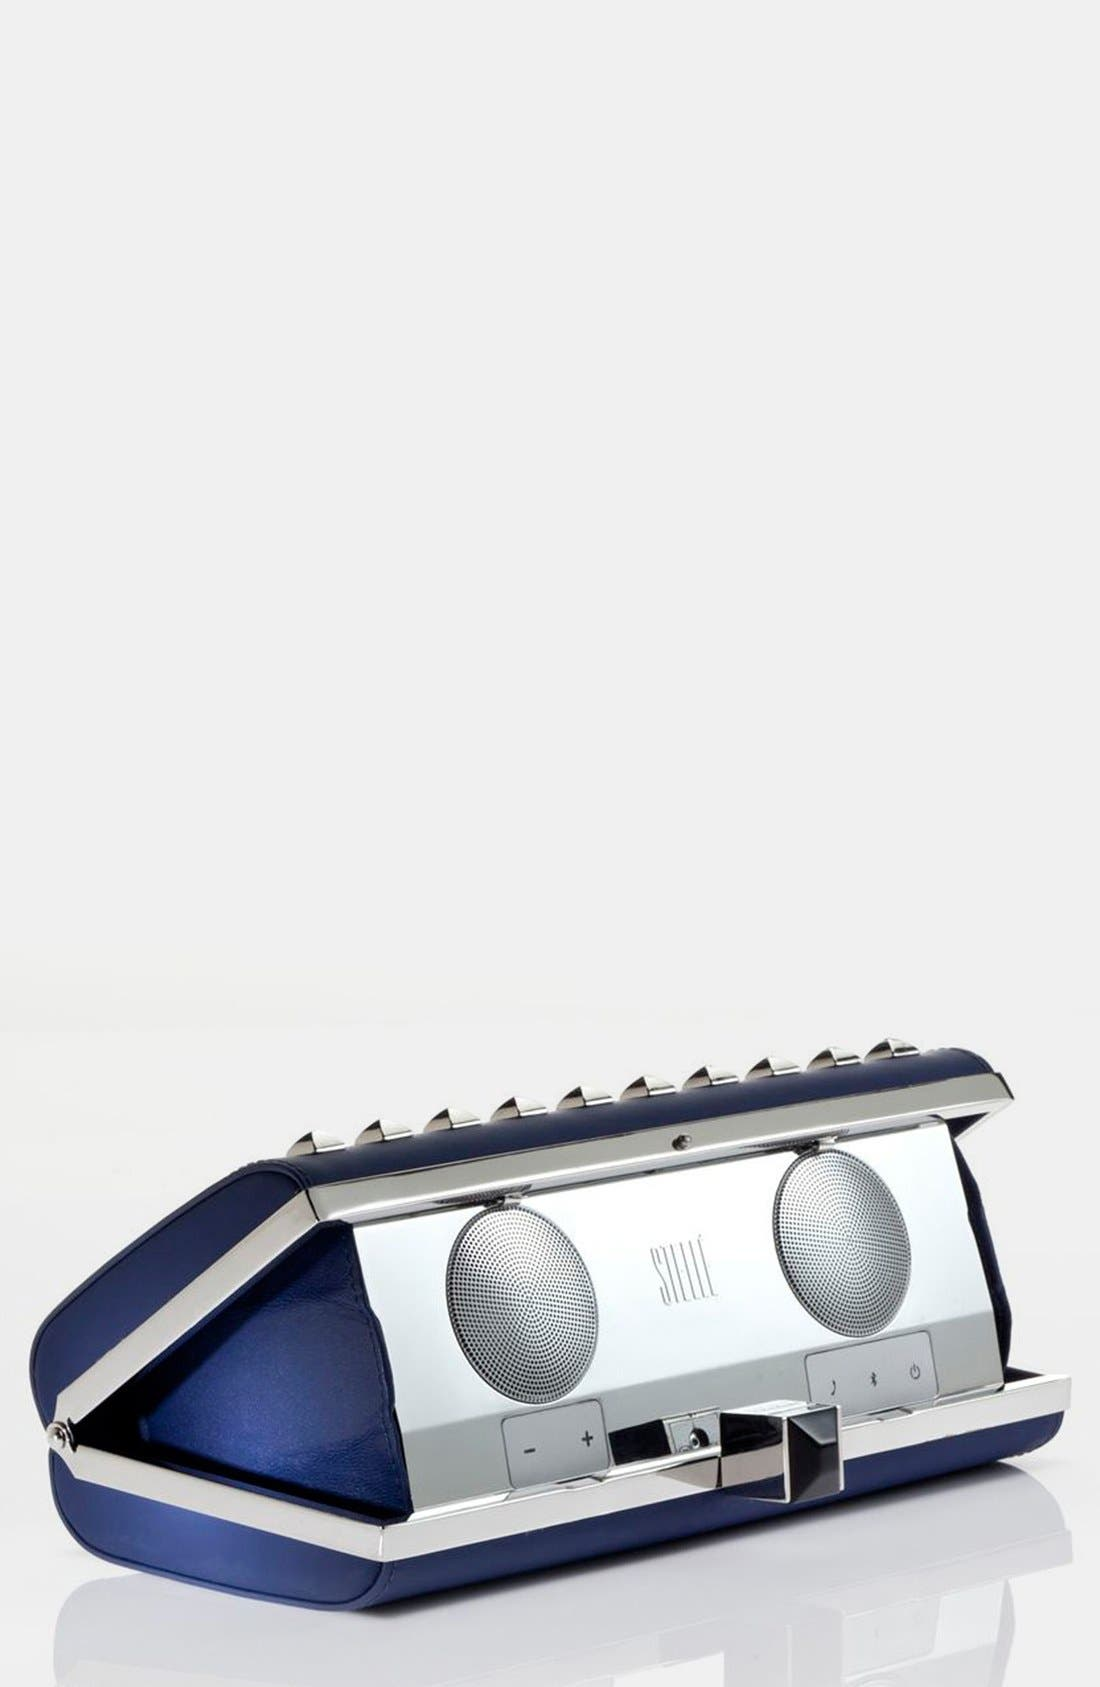 Rebecca Minkoff for Stellé Audio 'Studded Speaker' Clutch,                             Main thumbnail 1, color,                             401